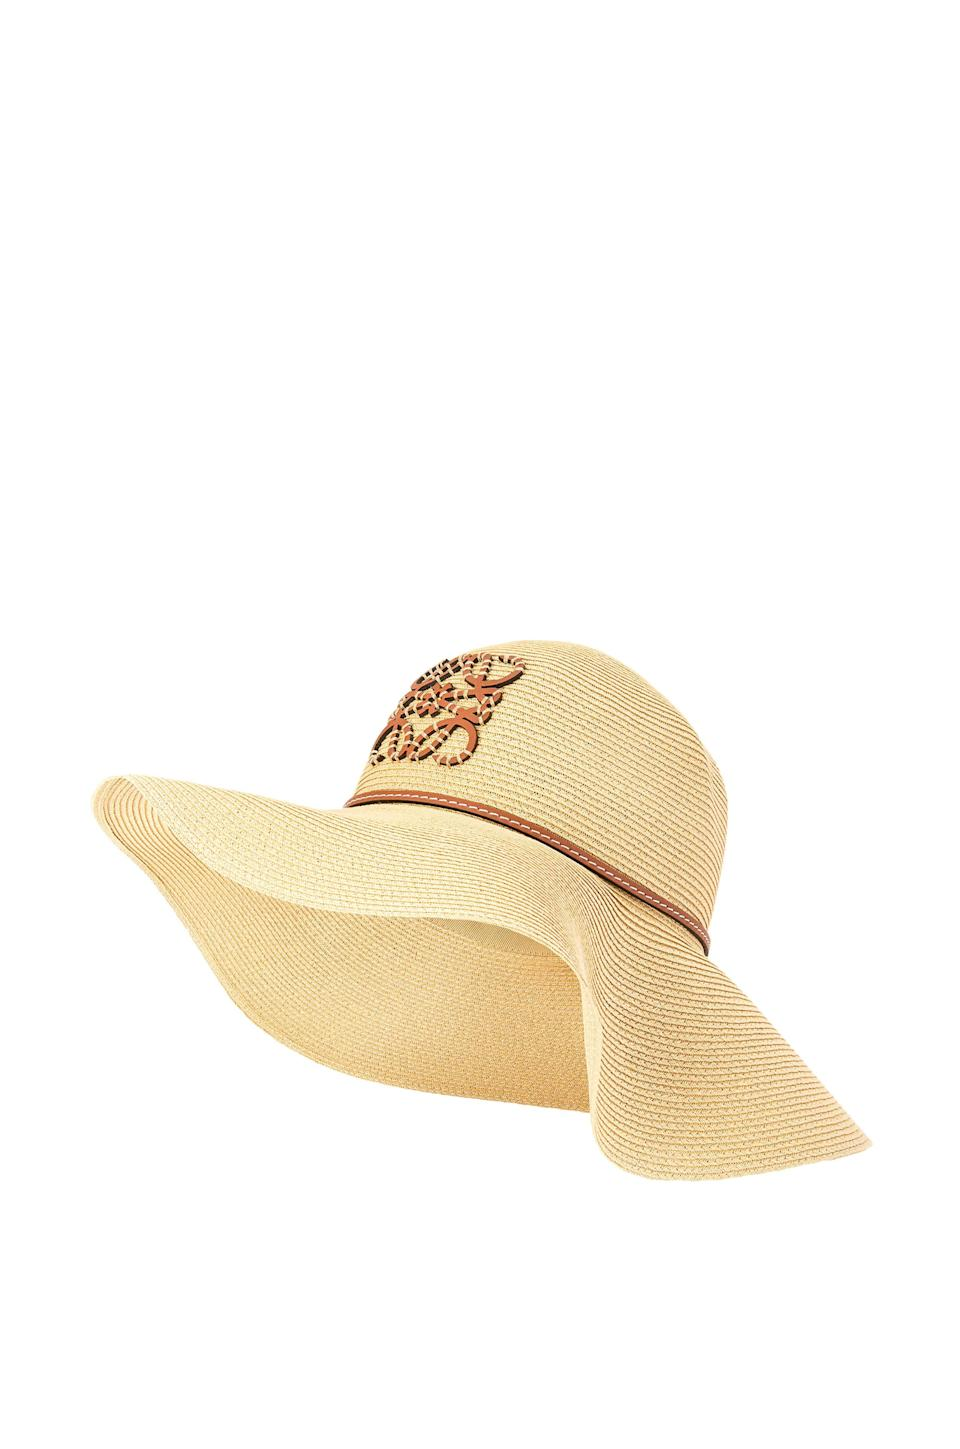 """<p><strong>loewe</strong></p><p>loewe.com</p><p><strong>$550.00</strong></p><p><a href=""""https://www.loewe.com/usa/en/women/accessories/hats-and-hair-accessories/capeline-hat-in-natural-fibre-and-calfskin/K820295X38-2123.html?cgid=w_hats_hair_accessories&p=15"""" rel=""""nofollow noopener"""" target=""""_blank"""" data-ylk=""""slk:Shop Now"""" class=""""link rapid-noclick-resp"""">Shop Now</a></p><p>Along with sunscreen, a good sunhat is your best friend this summer, plus this one from Loewe is especially stylish!</p>"""